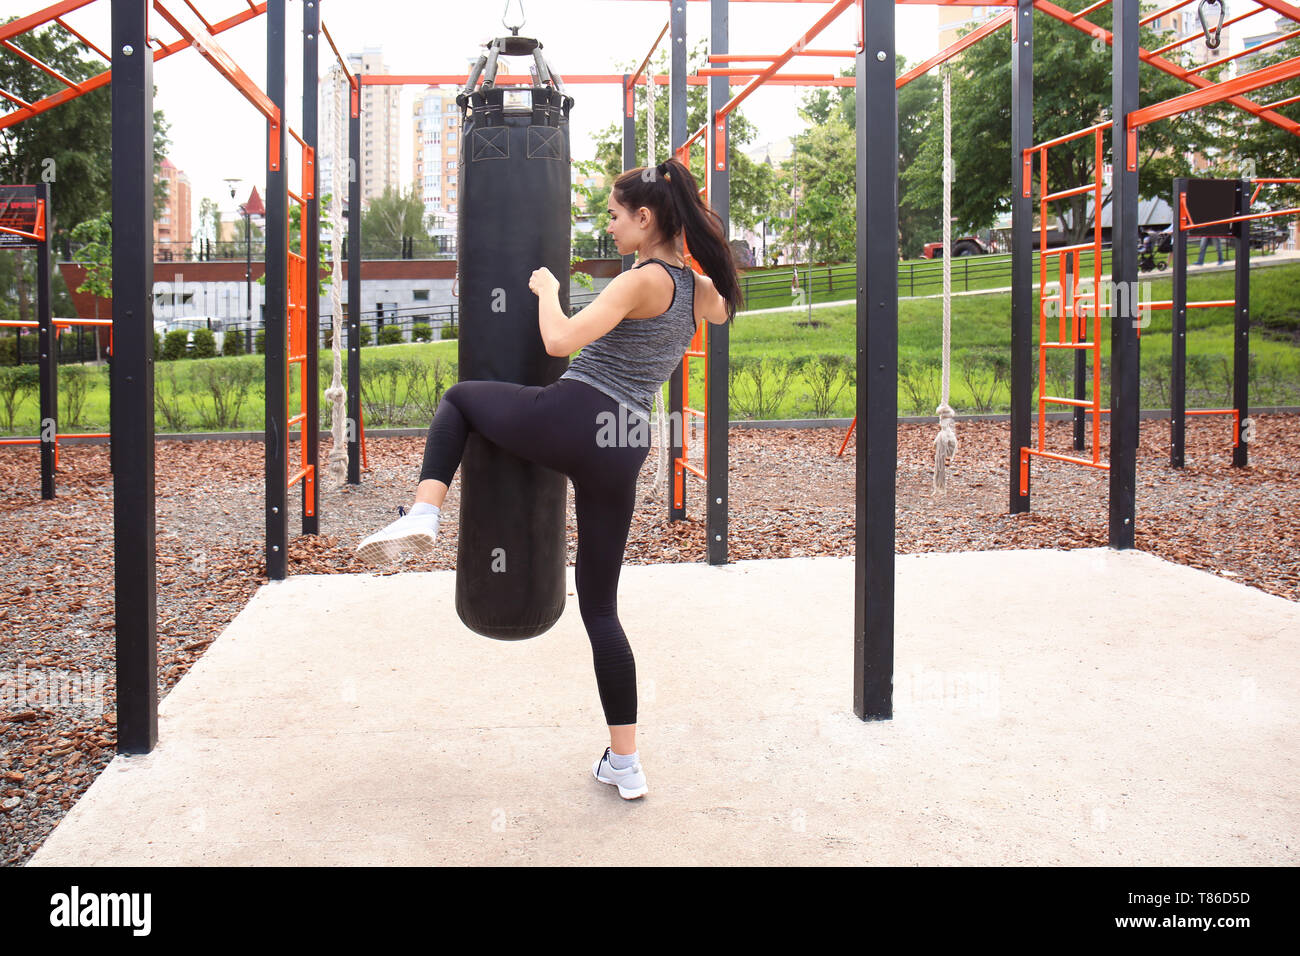 Sporty young woman training with punching bag on athletic field - Stock Image